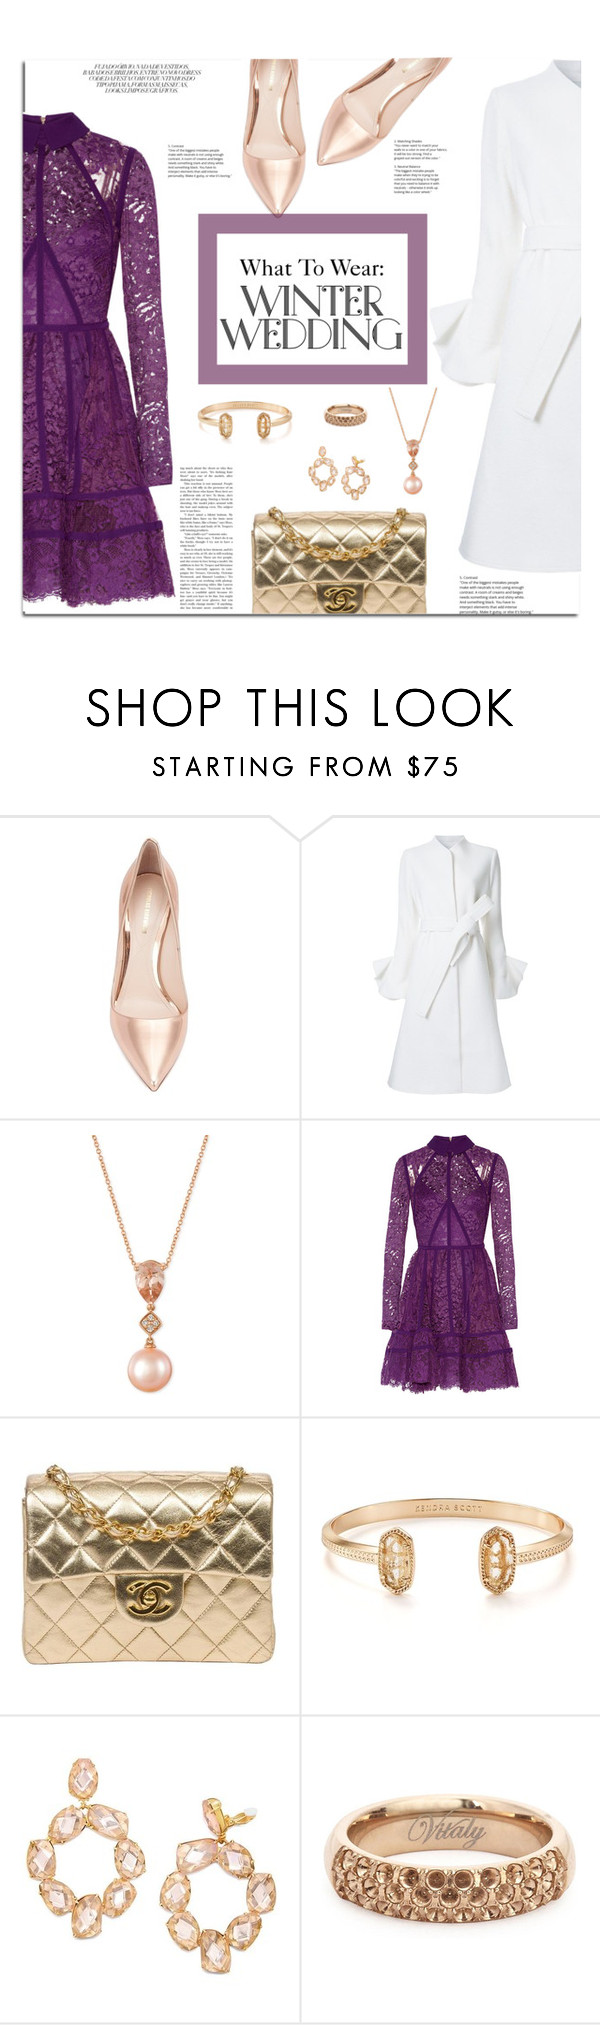 """""""What To Wear: Winter Wedding"""" by jafashions ❤ liked on Polyvore featuring Nicholas Kirkwood, Goen.J, LE VIAN, Elie Saab, Chanel, Kendra Scott, Tory Burch and Vitaly"""